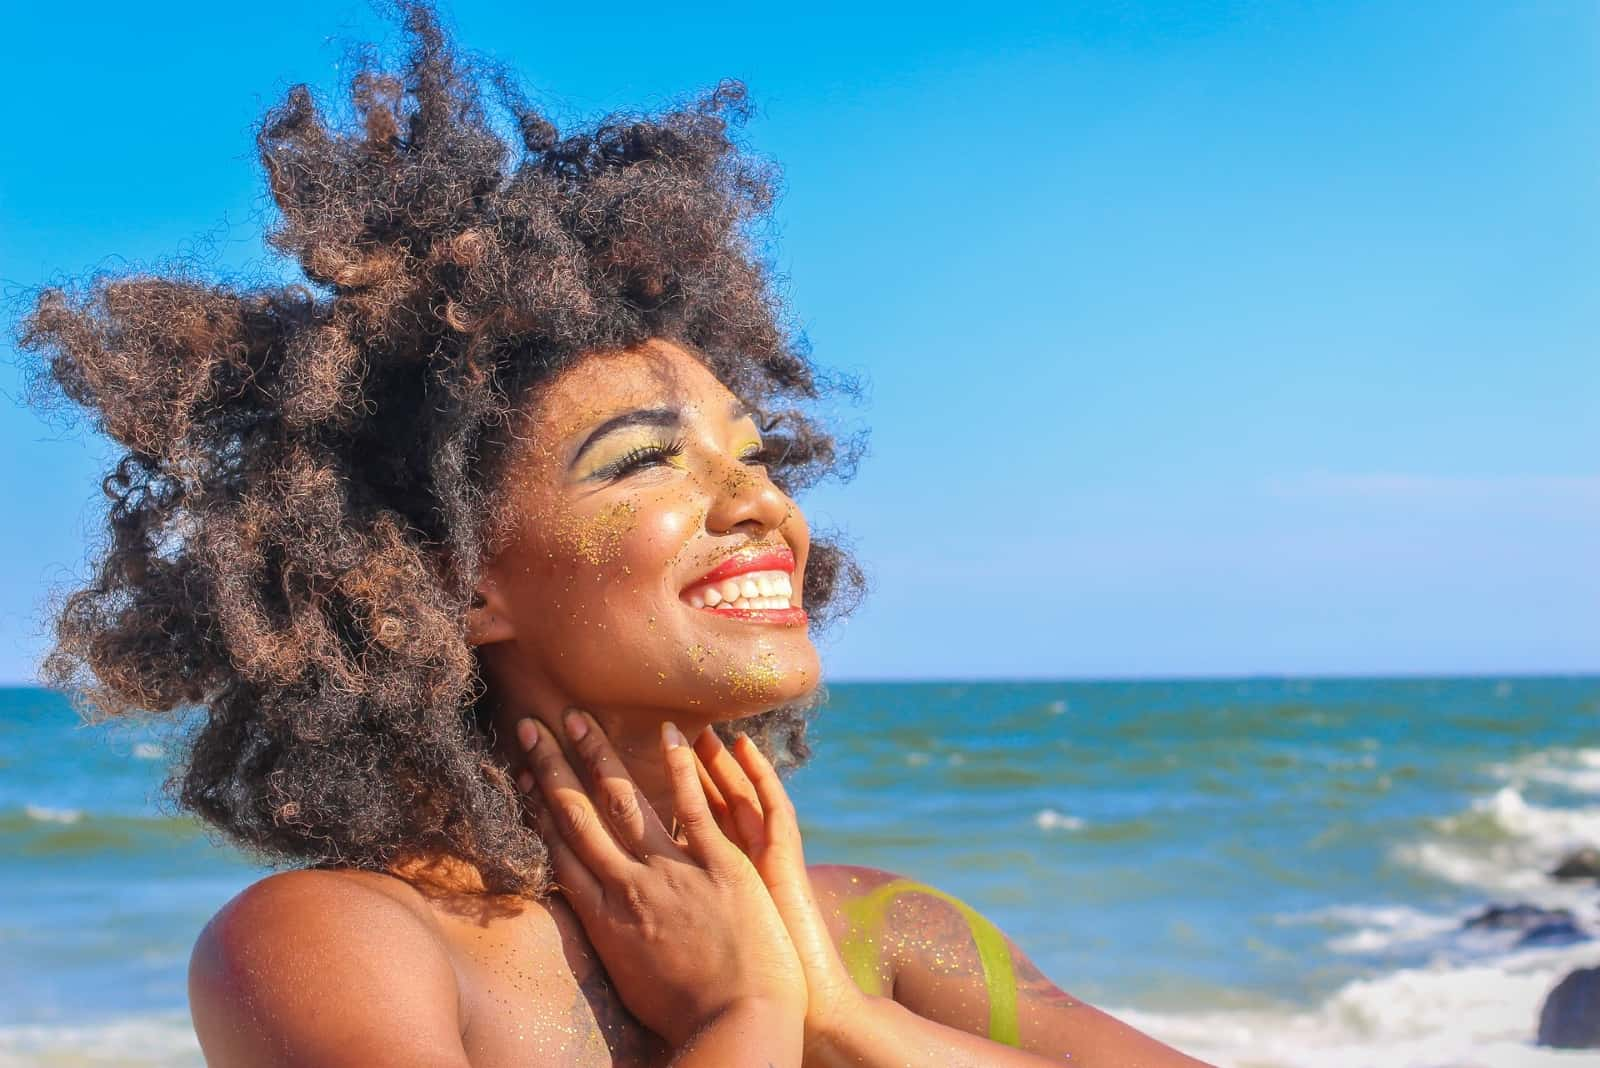 woman with curly hair smiling while standing on beach